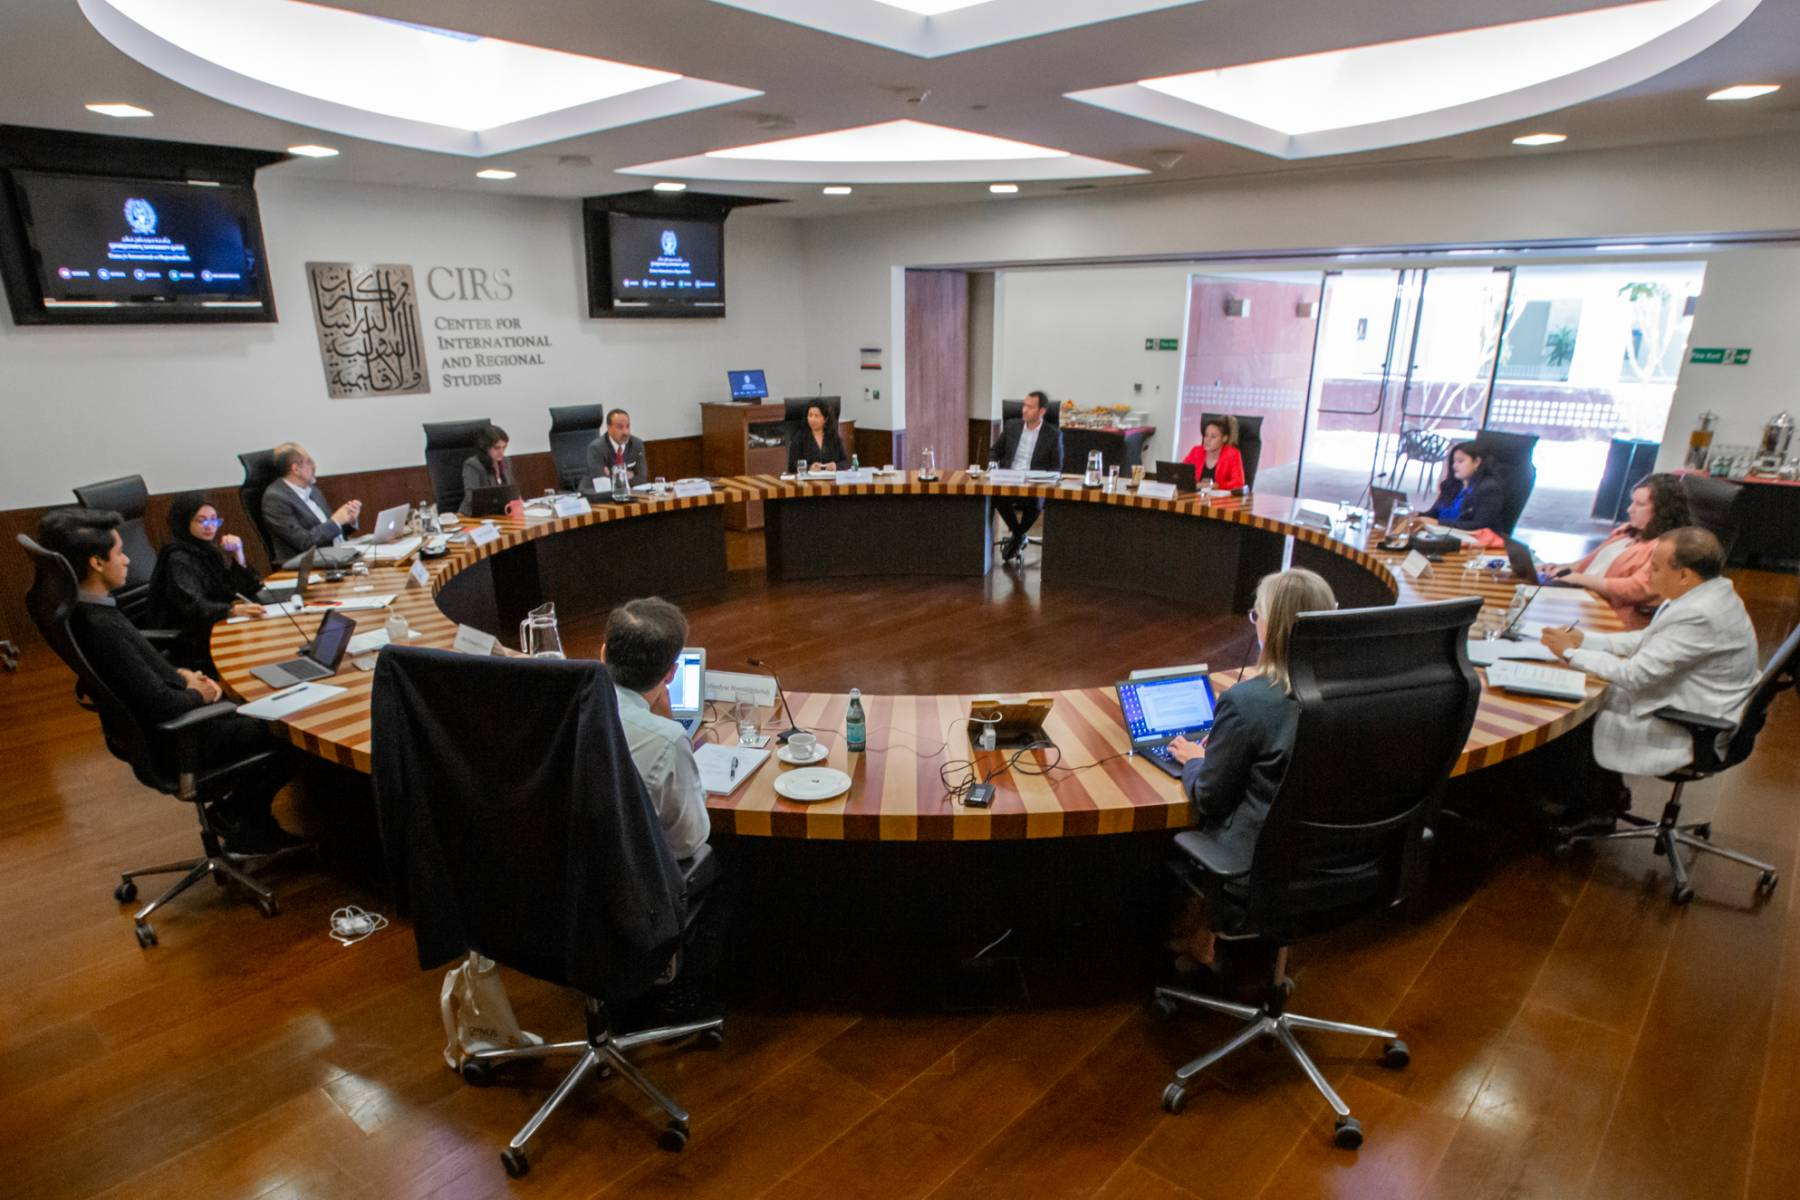 Political Economy of the Contemporary Middle East Working Group II